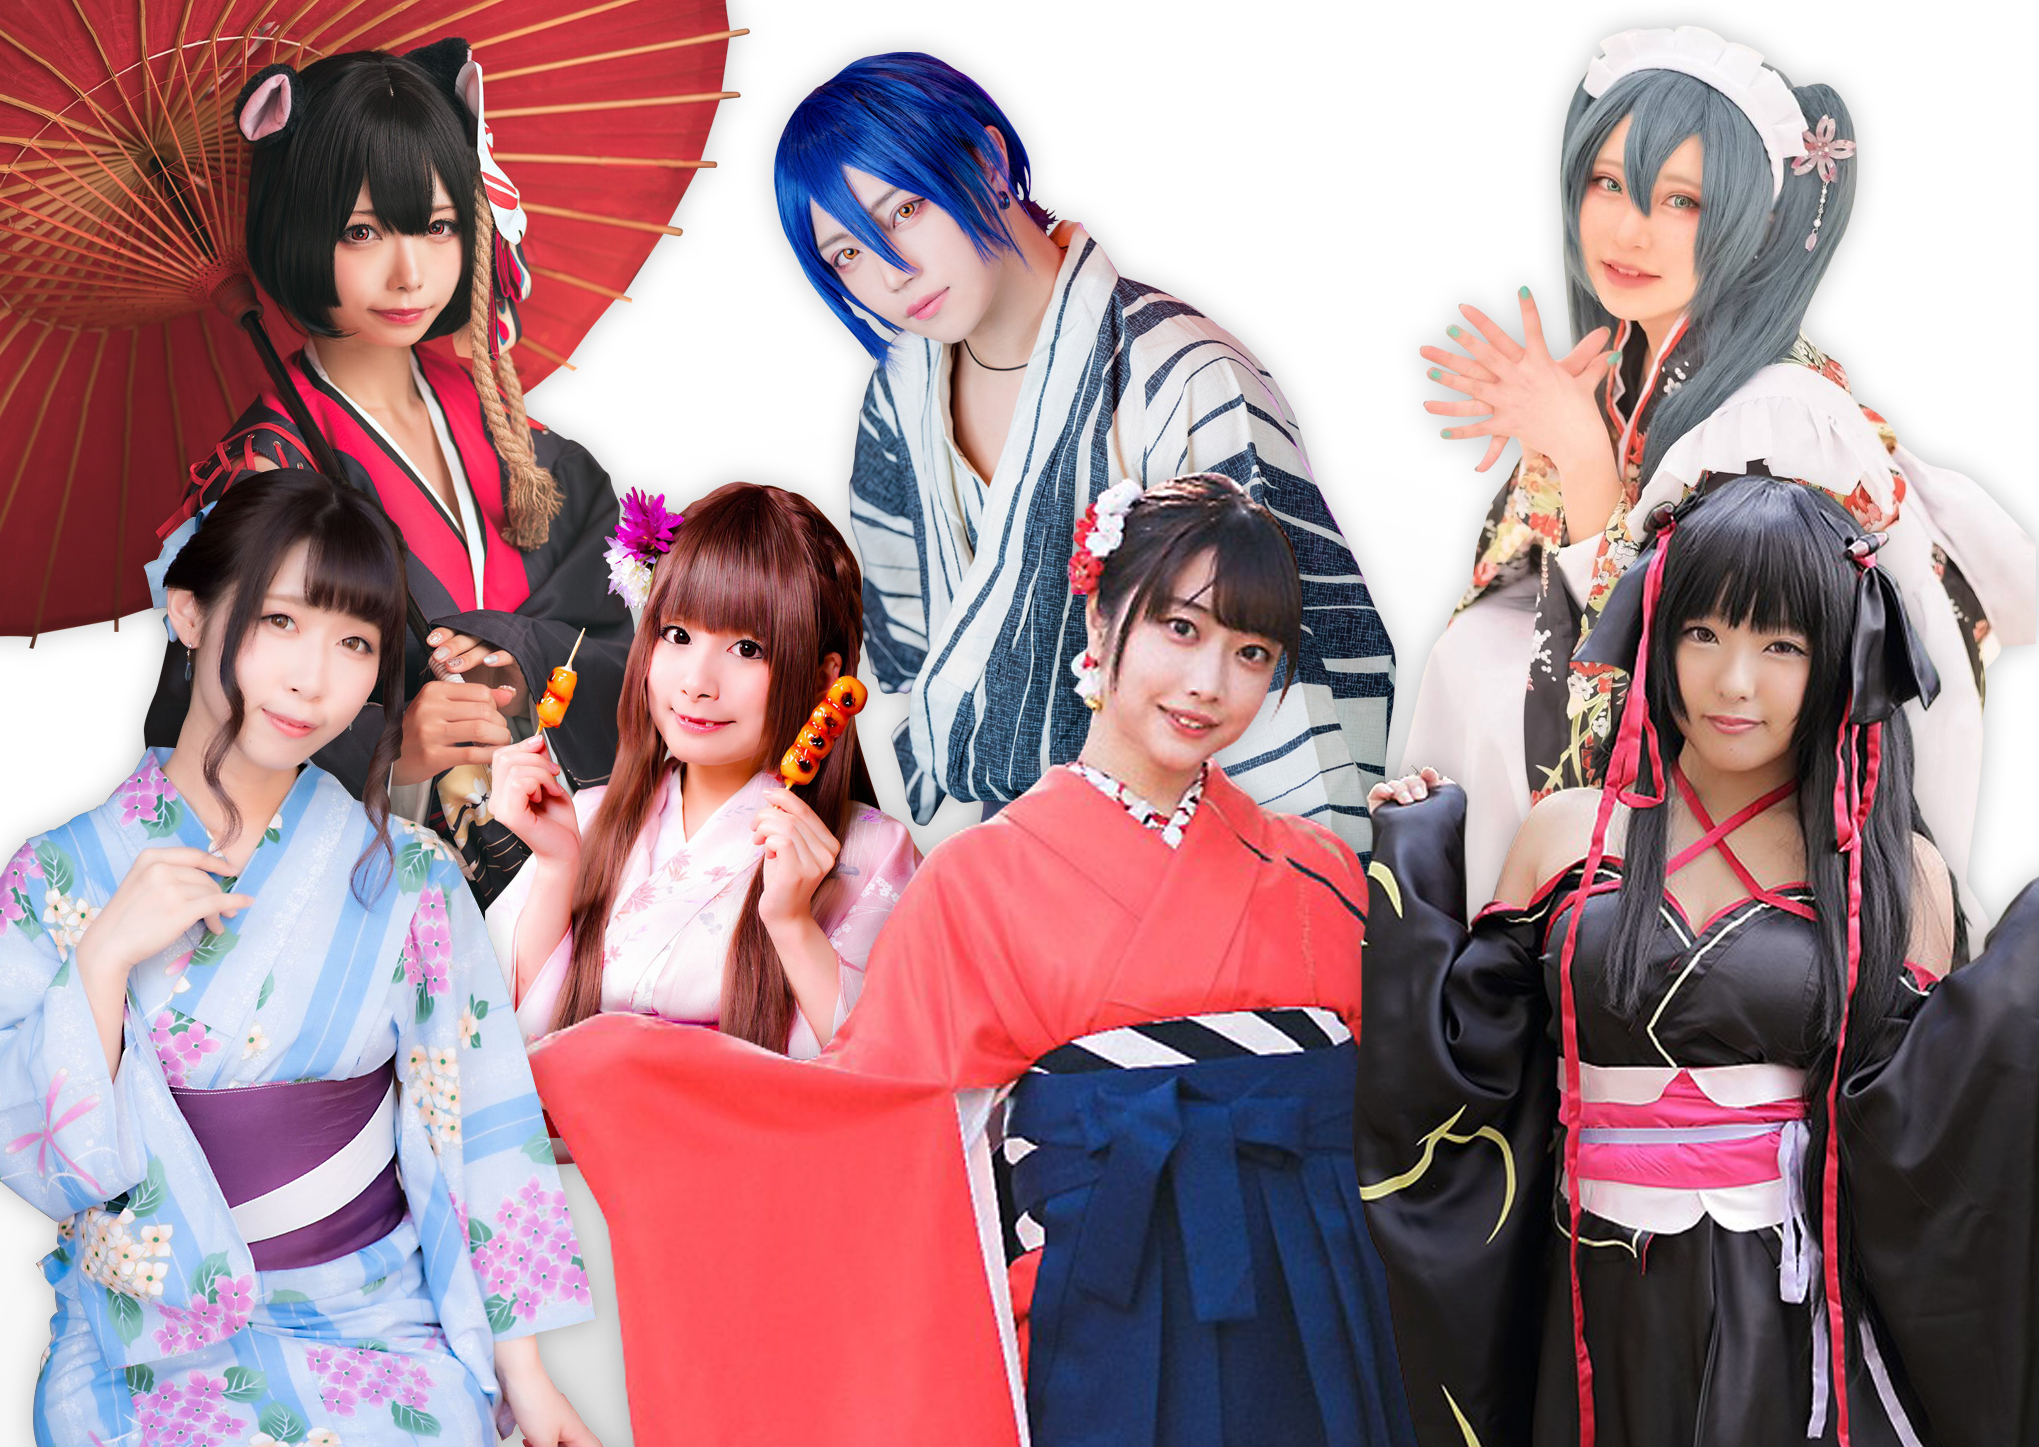 Concept photo of Seven Gods of Fortune Cosplay Parade event